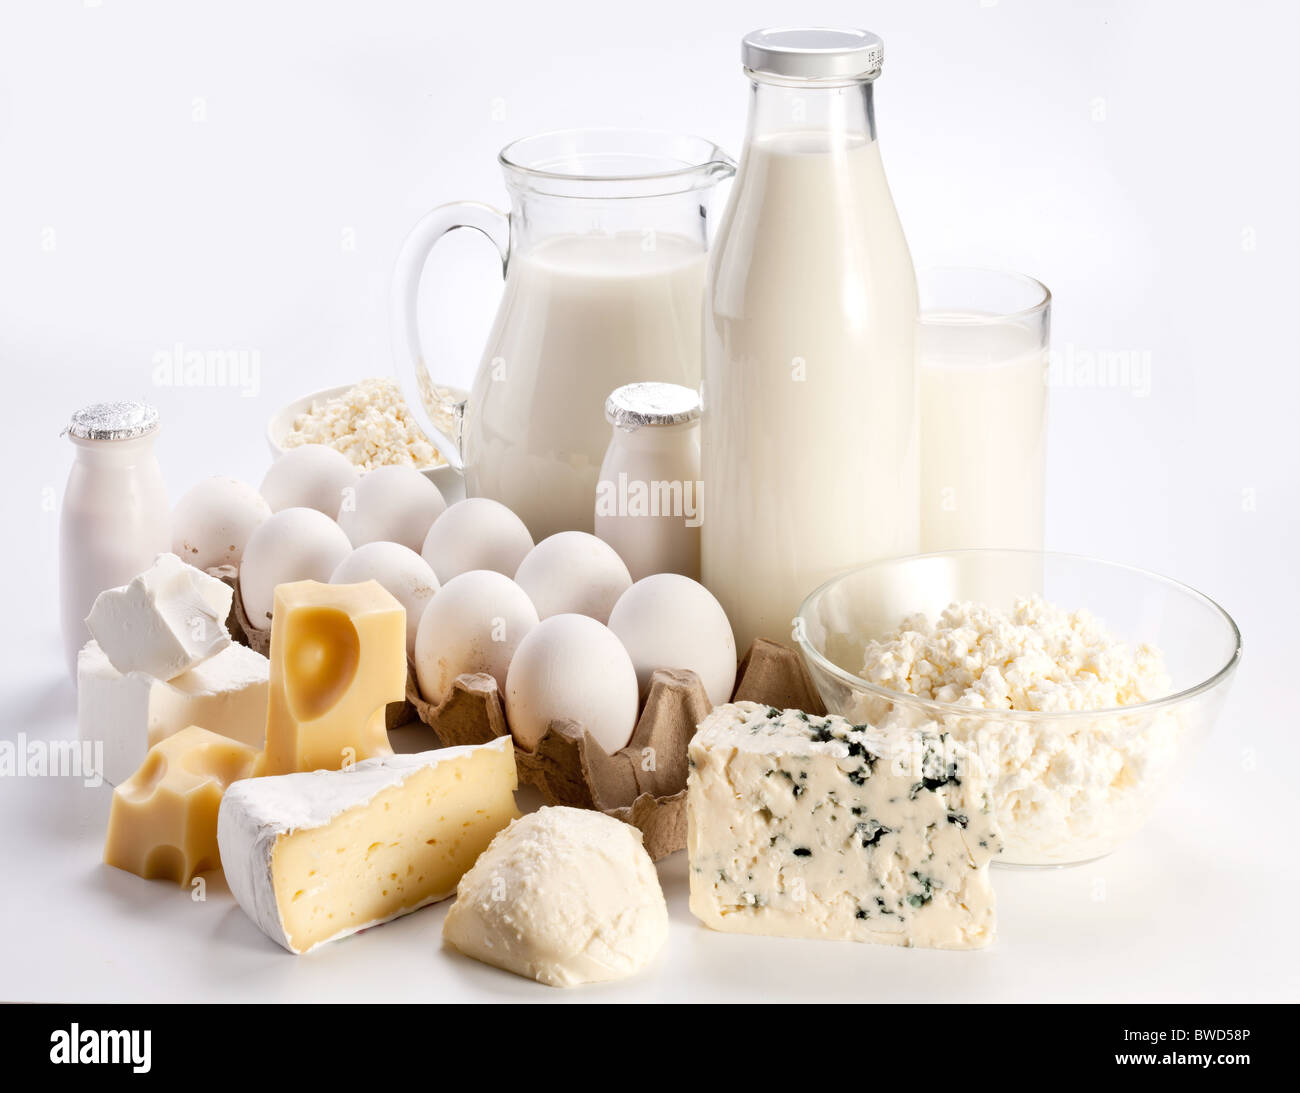 Protein products: cheese, cream, milk, eggs. On a white background. - Stock Image